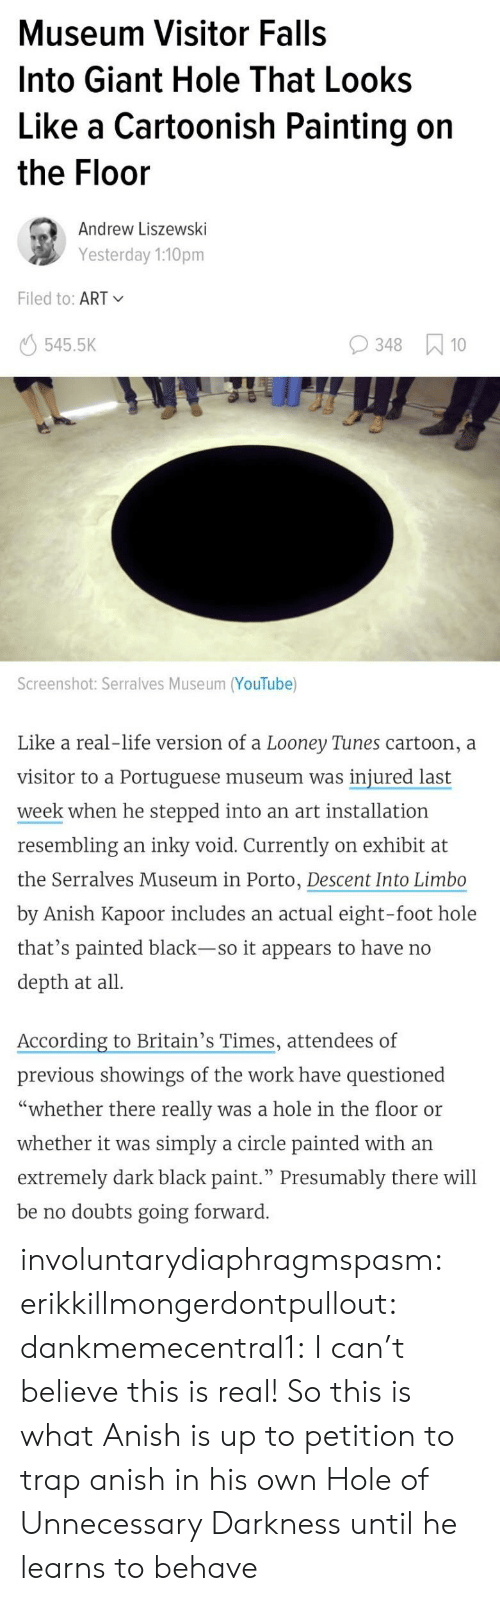 "Life, Looney Tunes, and Target: Museum Visitor Falls  Into Giant Hole That Looks  Like a Cartoonish Painting on  the Floor  Andrew Liszewski  Yesterday 1:10pm  Filed to: ART  545.5K  348 10  Screenshot: Serralves Museum (YouTube)  Like a real-life version of a Looney Tunes cartoon, a  visitor to a Portuguese museum was injured last  week when he stepped into an art installation  resembling an inky void. Currently on exhibit at  the Serralves Museum in Porto, Descent Into Limbo  by Anish Kapoor includes an actual eight-foot hole  that's painted black-so it appears to have no  depth at all  According to Britain's Times, attendees of  previous showings of the work have questioned  ""whether there really was a hole in the floor or  whether it was simply a circle painted with an  extremely dark black paint."" Presumably there will  be no doubts going forward involuntarydiaphragmspasm: erikkillmongerdontpullout:  dankmemecentral1: I can't believe this is real!  So this is what Anish is up to   petition to trap anish in his own Hole of Unnecessary Darkness until he learns to behave"